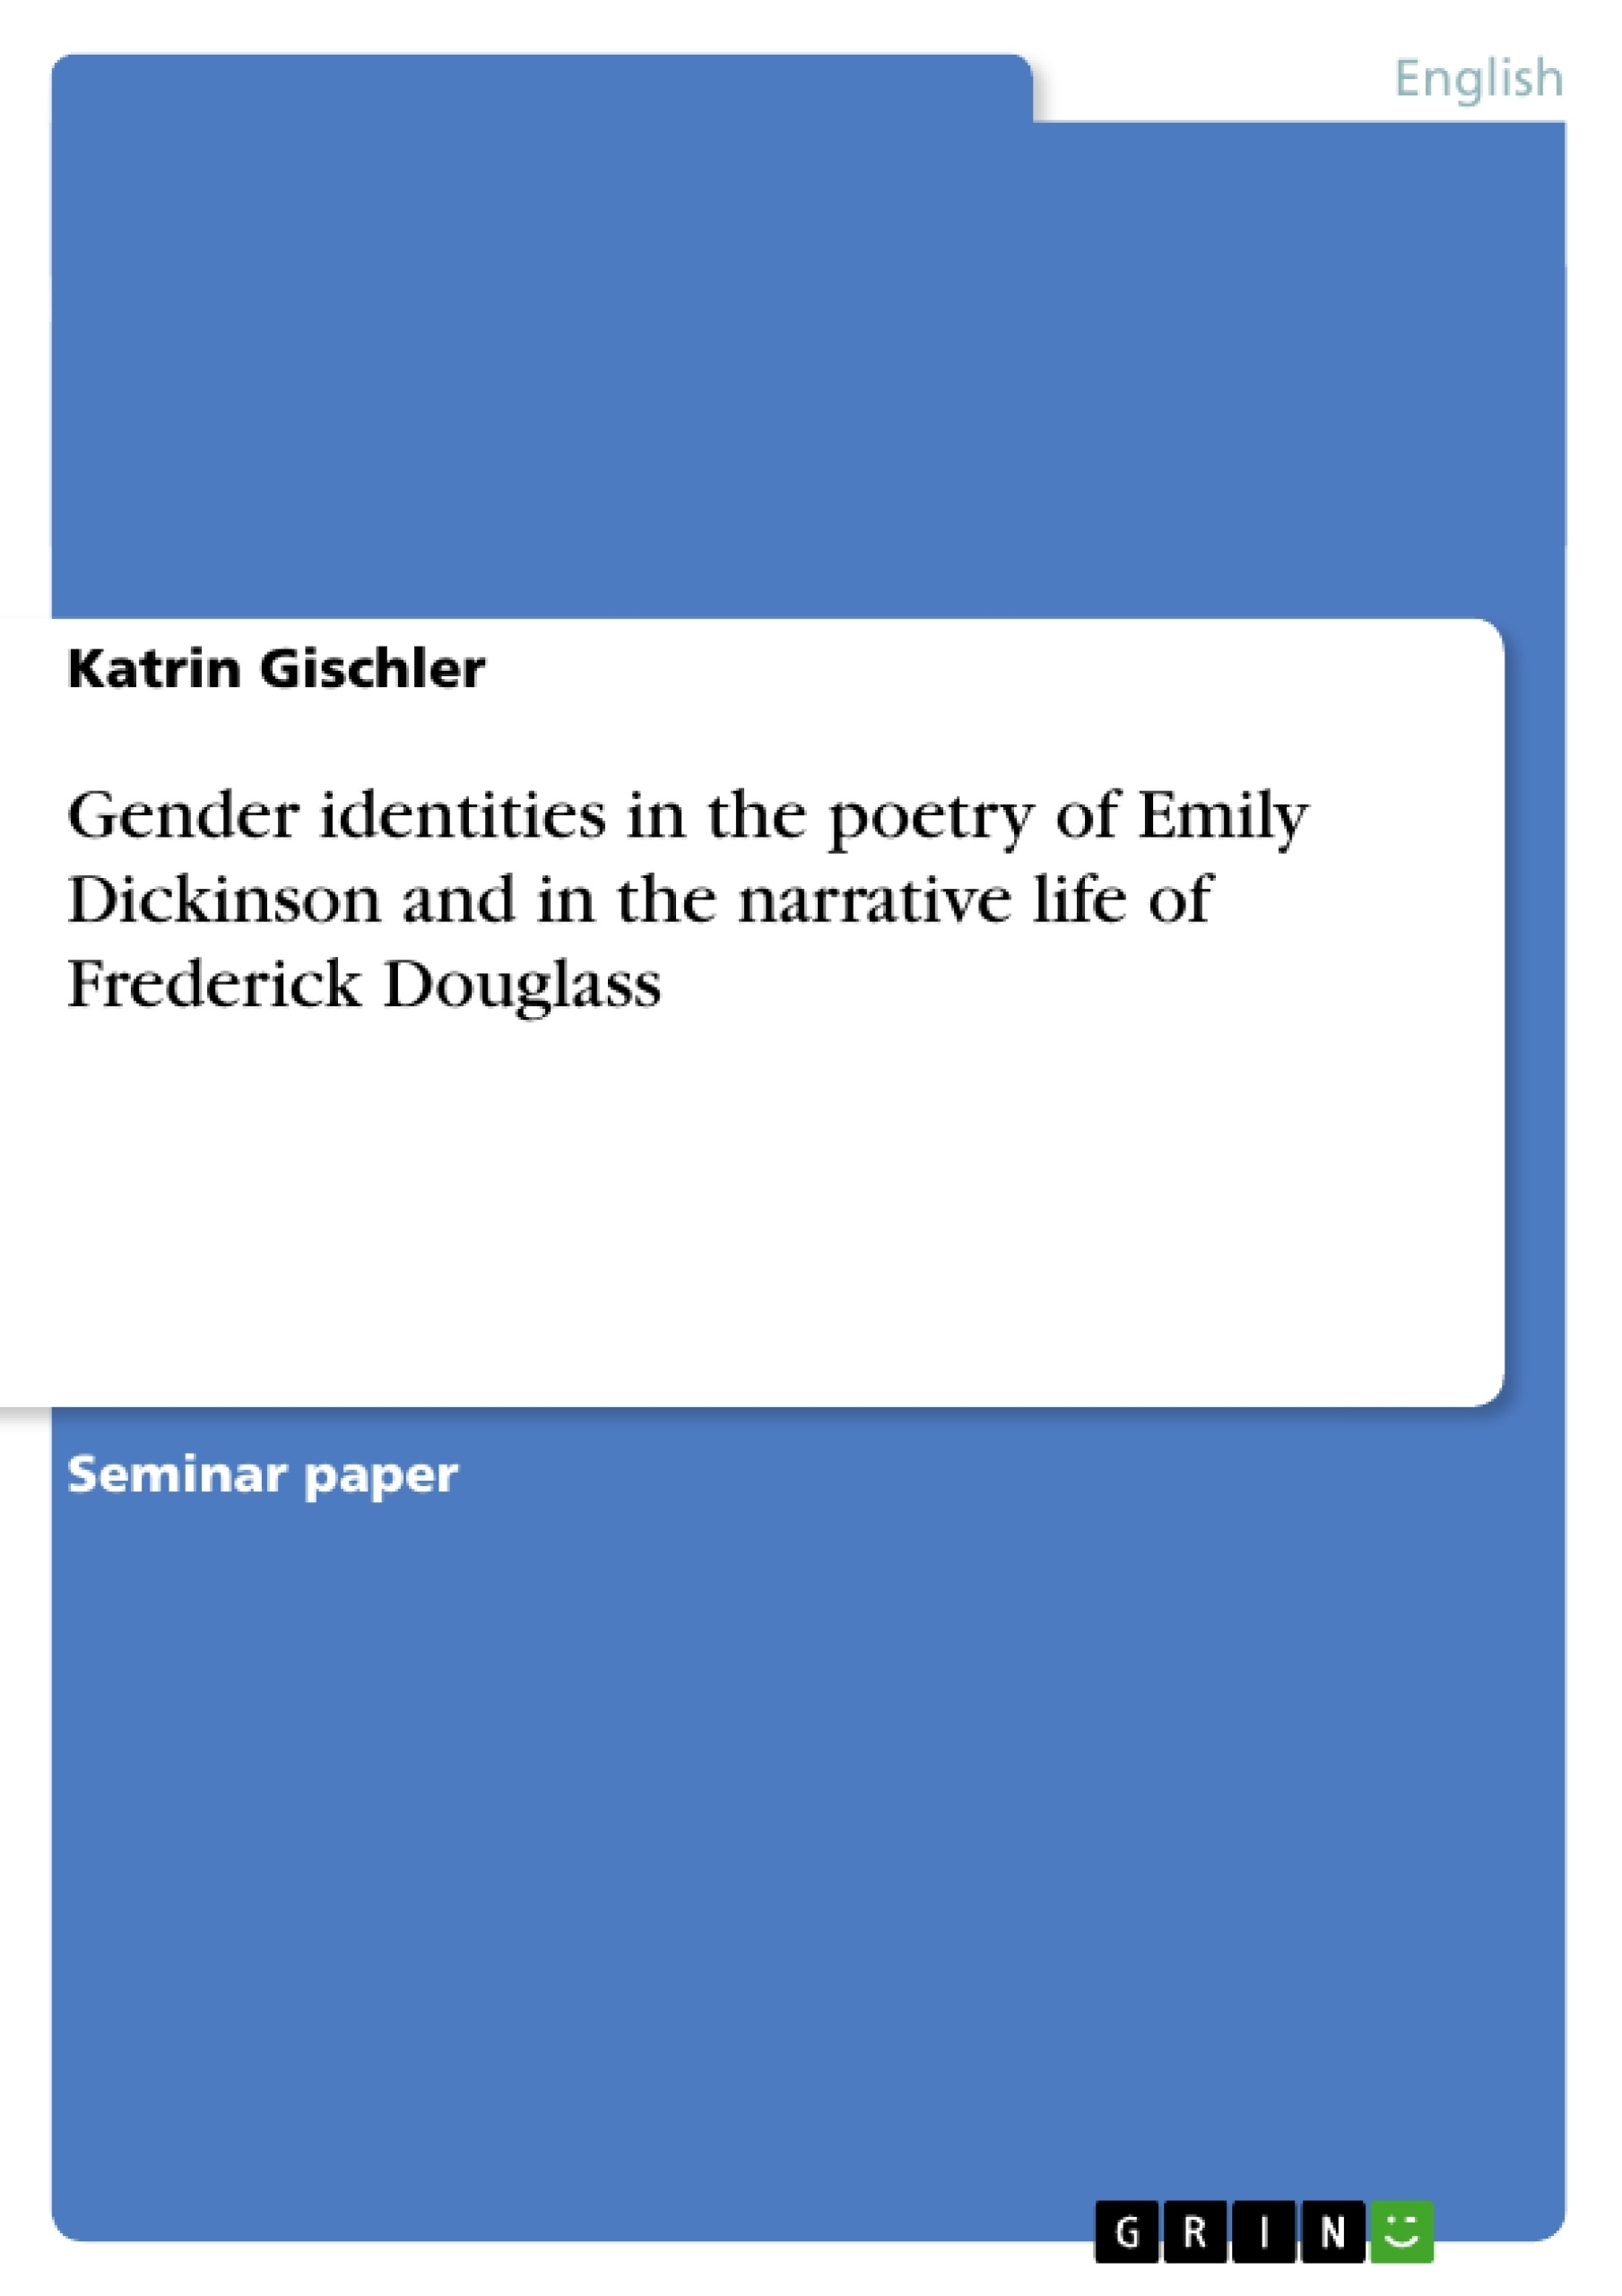 Title: Gender identities in the poetry of Emily Dickinson and in the narrative life of Frederick Douglass